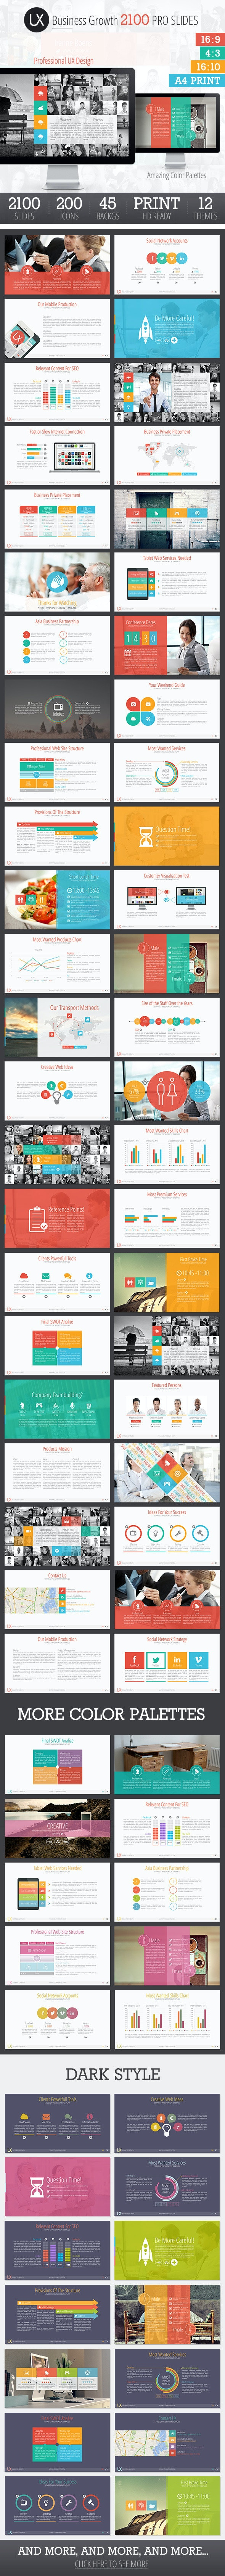 UX Design Presentation Template - Business Keynote Templates